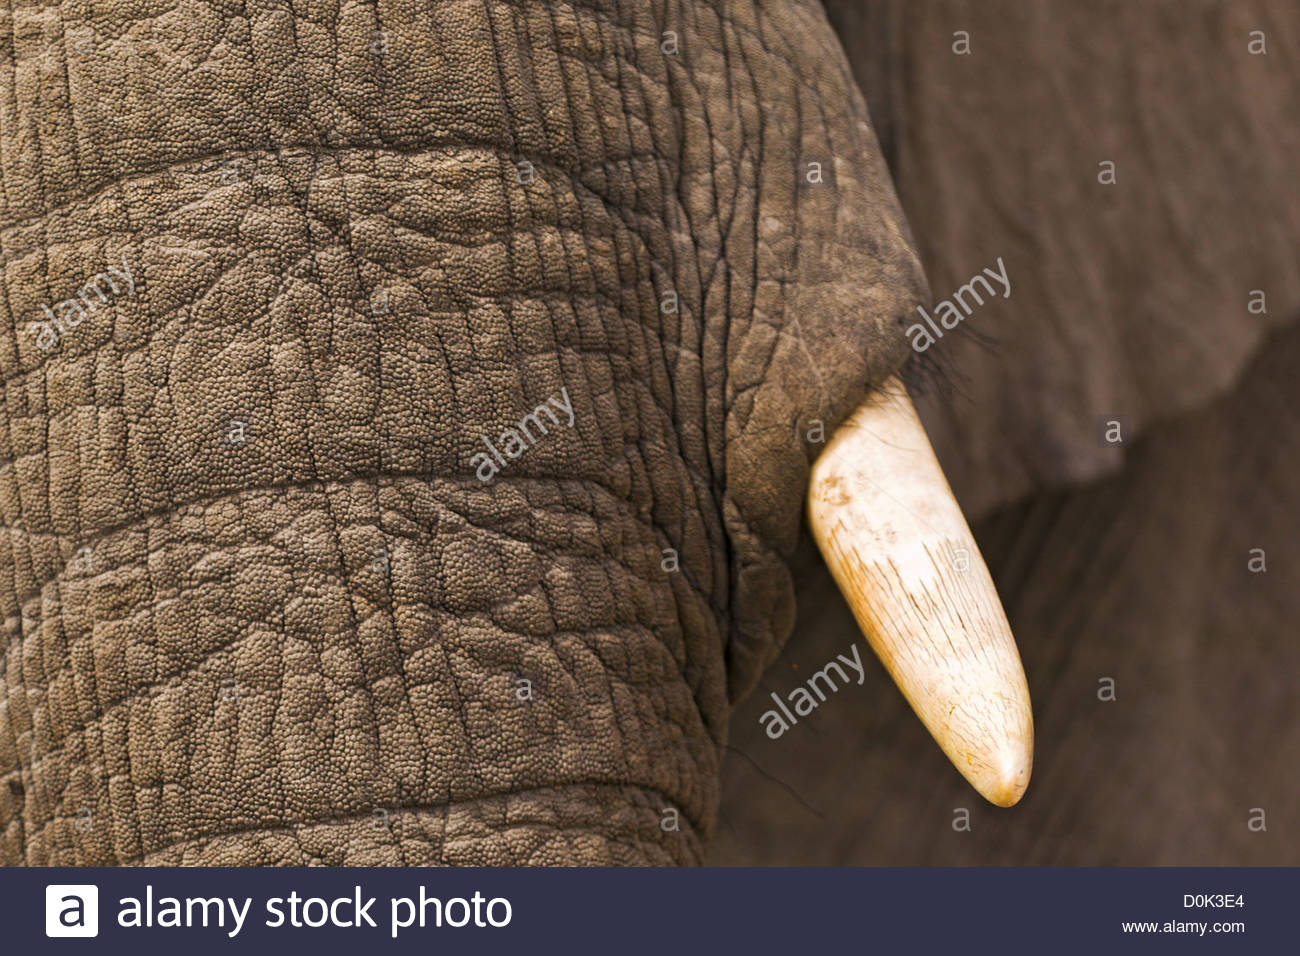 A close-up of an elephant playing in the mud in the Okavango Delta of Botswana. Stock Photo